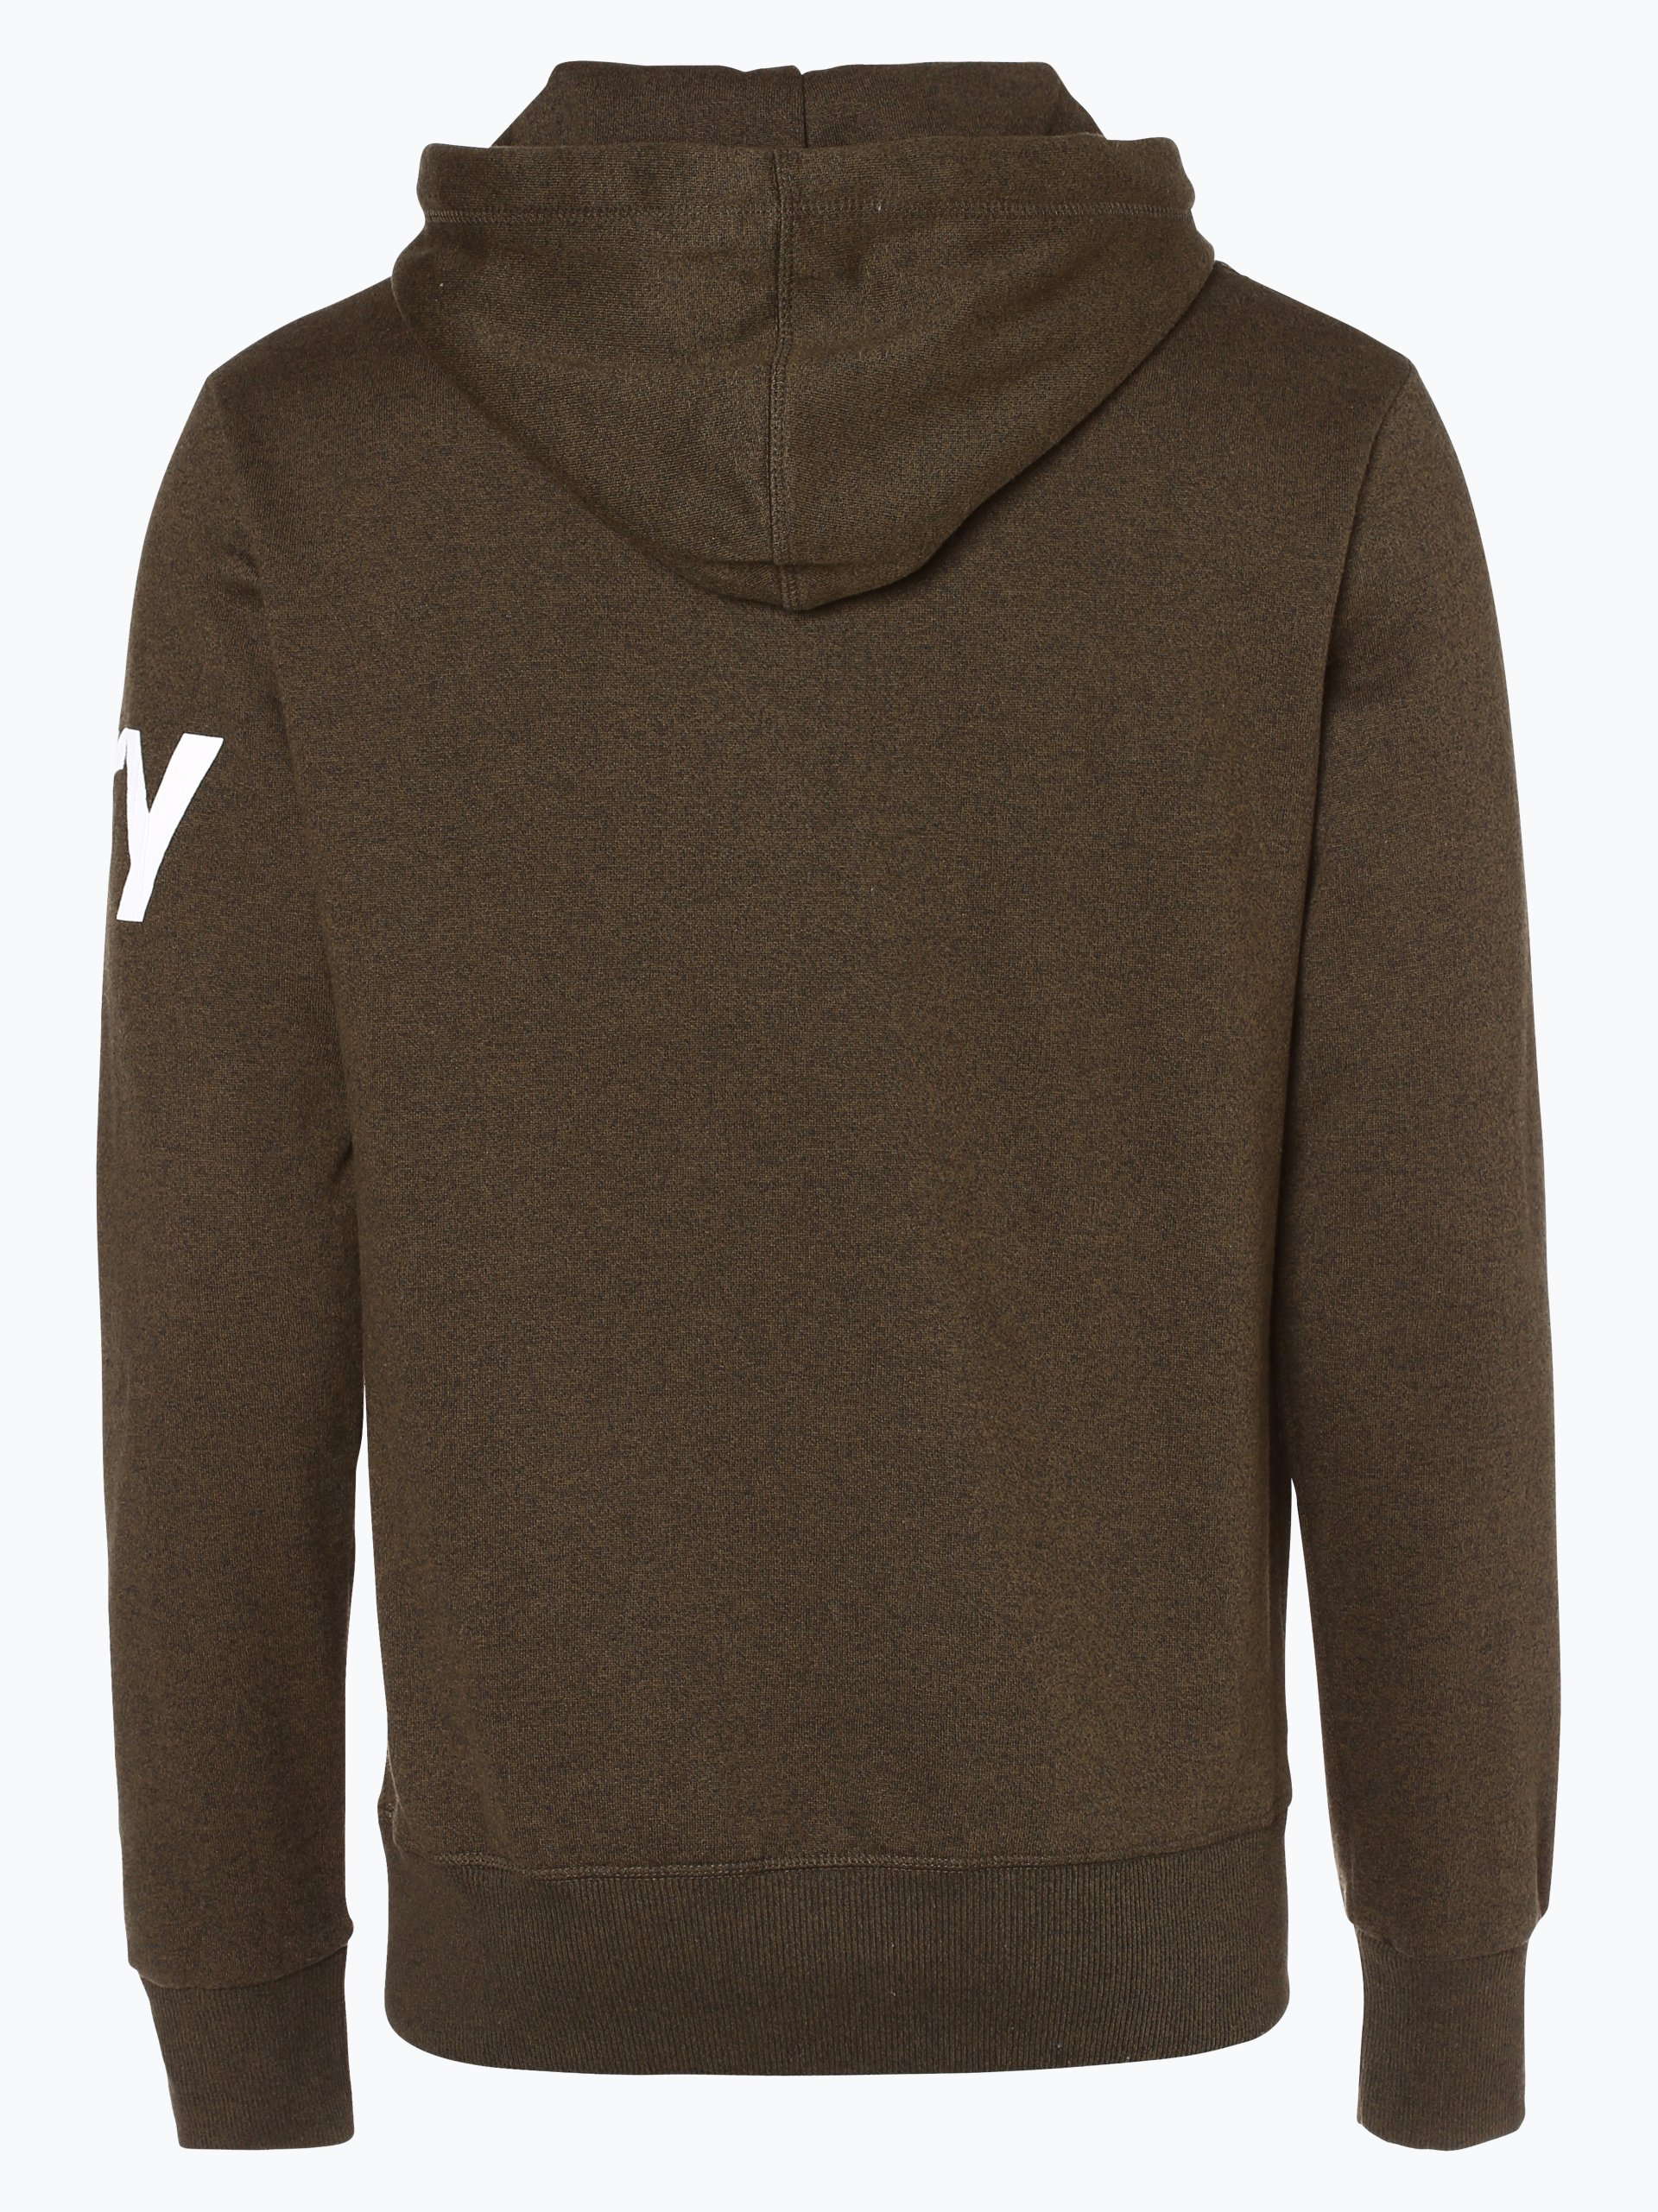 superdry herren sweatshirt braun uni online kaufen. Black Bedroom Furniture Sets. Home Design Ideas